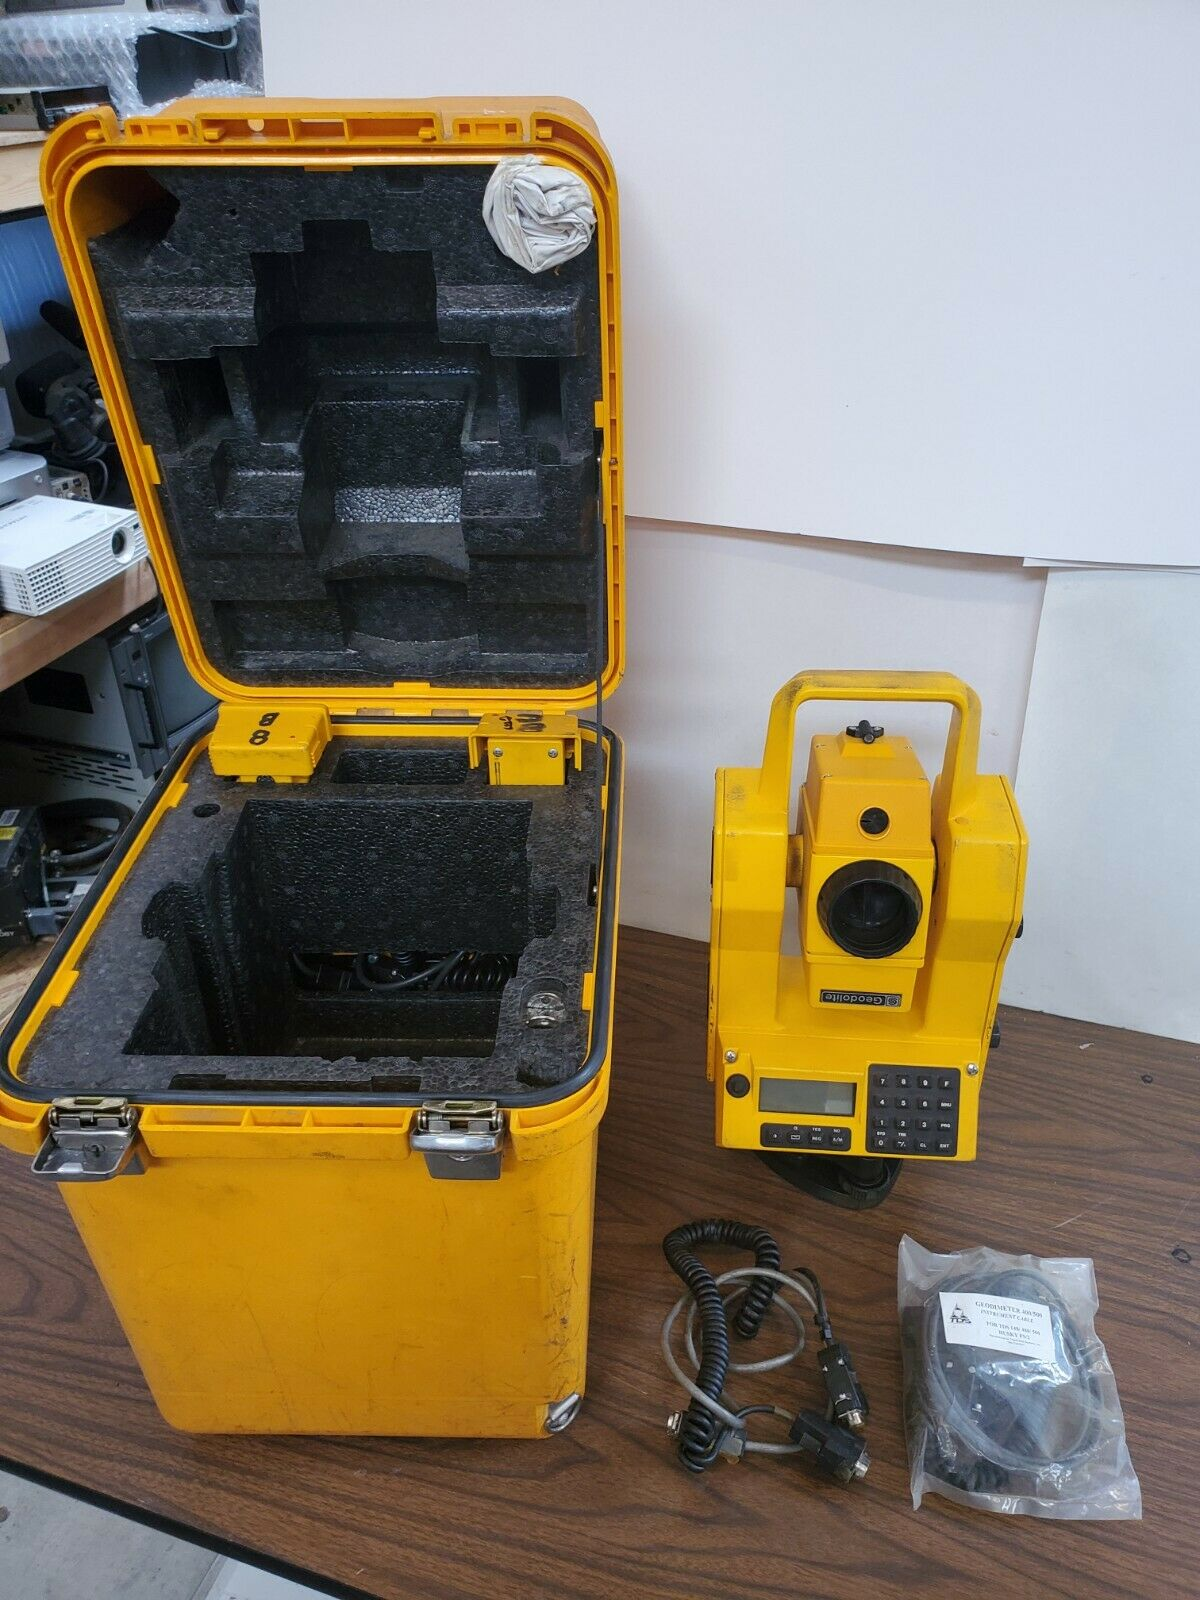 Geodolite GMD 504 Total Station With Case/Batteries